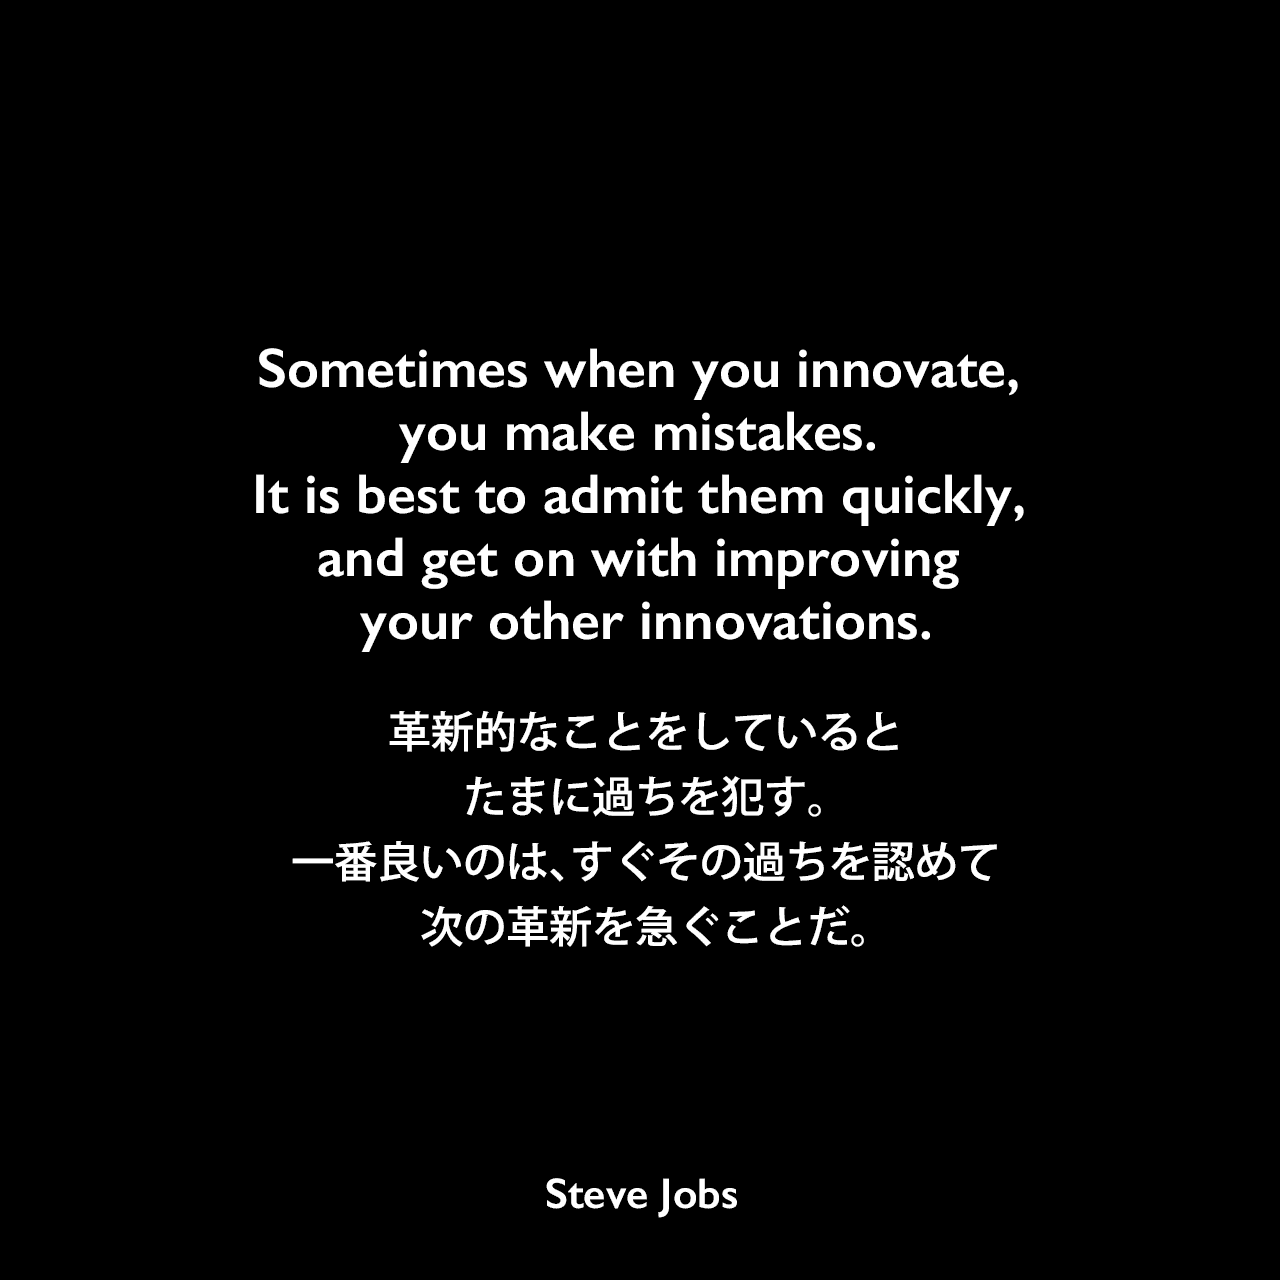 Sometimes when you innovate, you make mistakes. It is best to admit them quickly, and get on with improving your other innovations.革新的なことをしていると、たまに過ちを犯す。一番良いのは、すぐその過ちを認めて、次の革新を急ぐことだ。- ジェフリー・S. ヤングの本「Steve Jobs」よりSteve Jobs